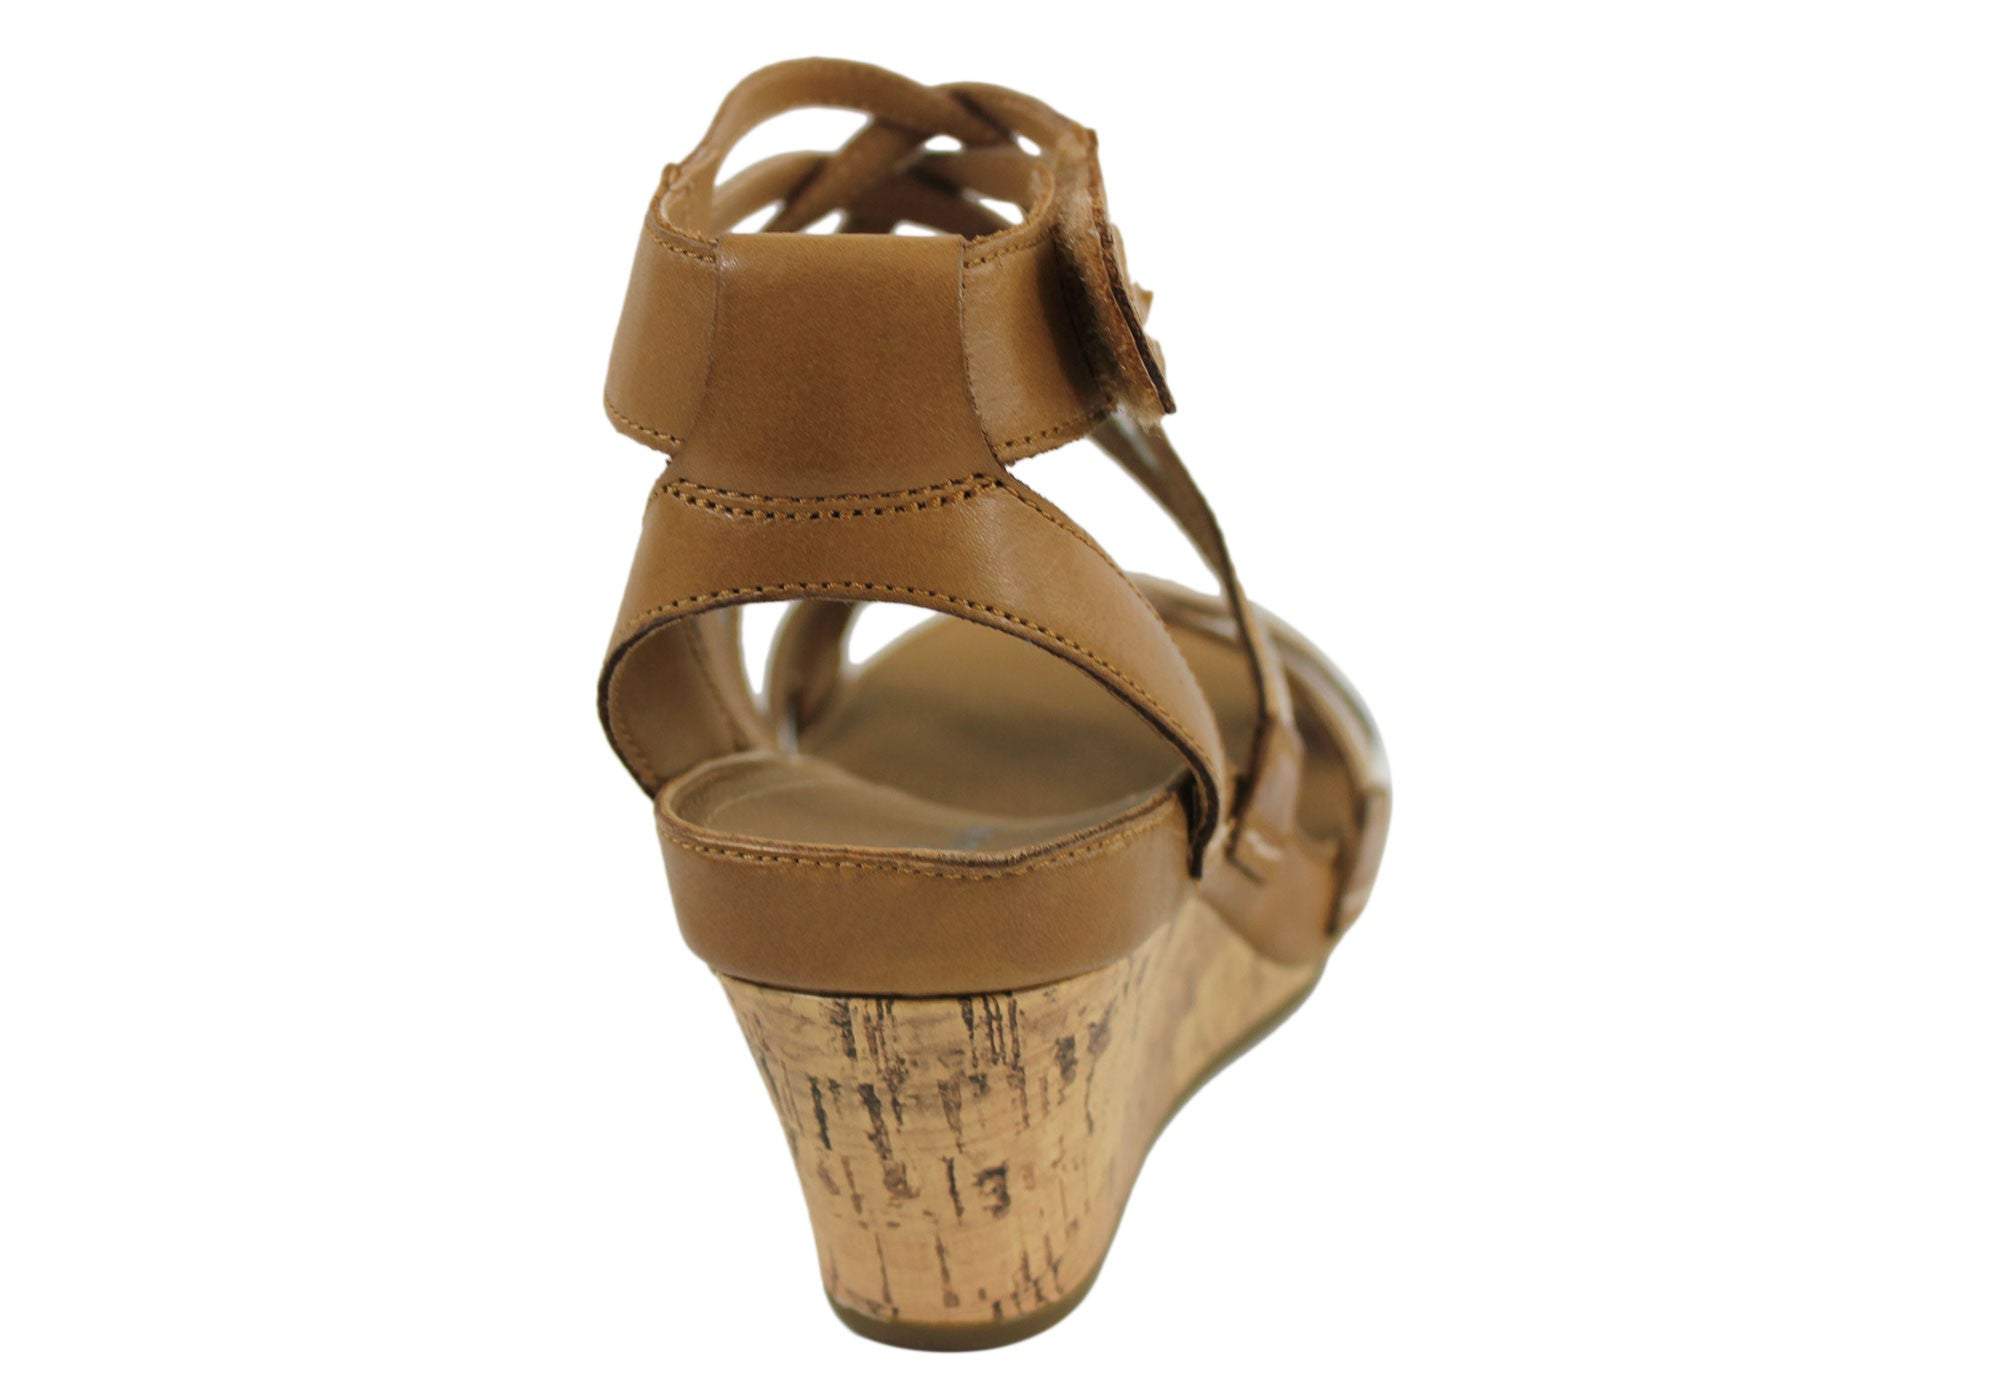 Clarks Rusty Free Womens Leather Wedge Heel Sandals